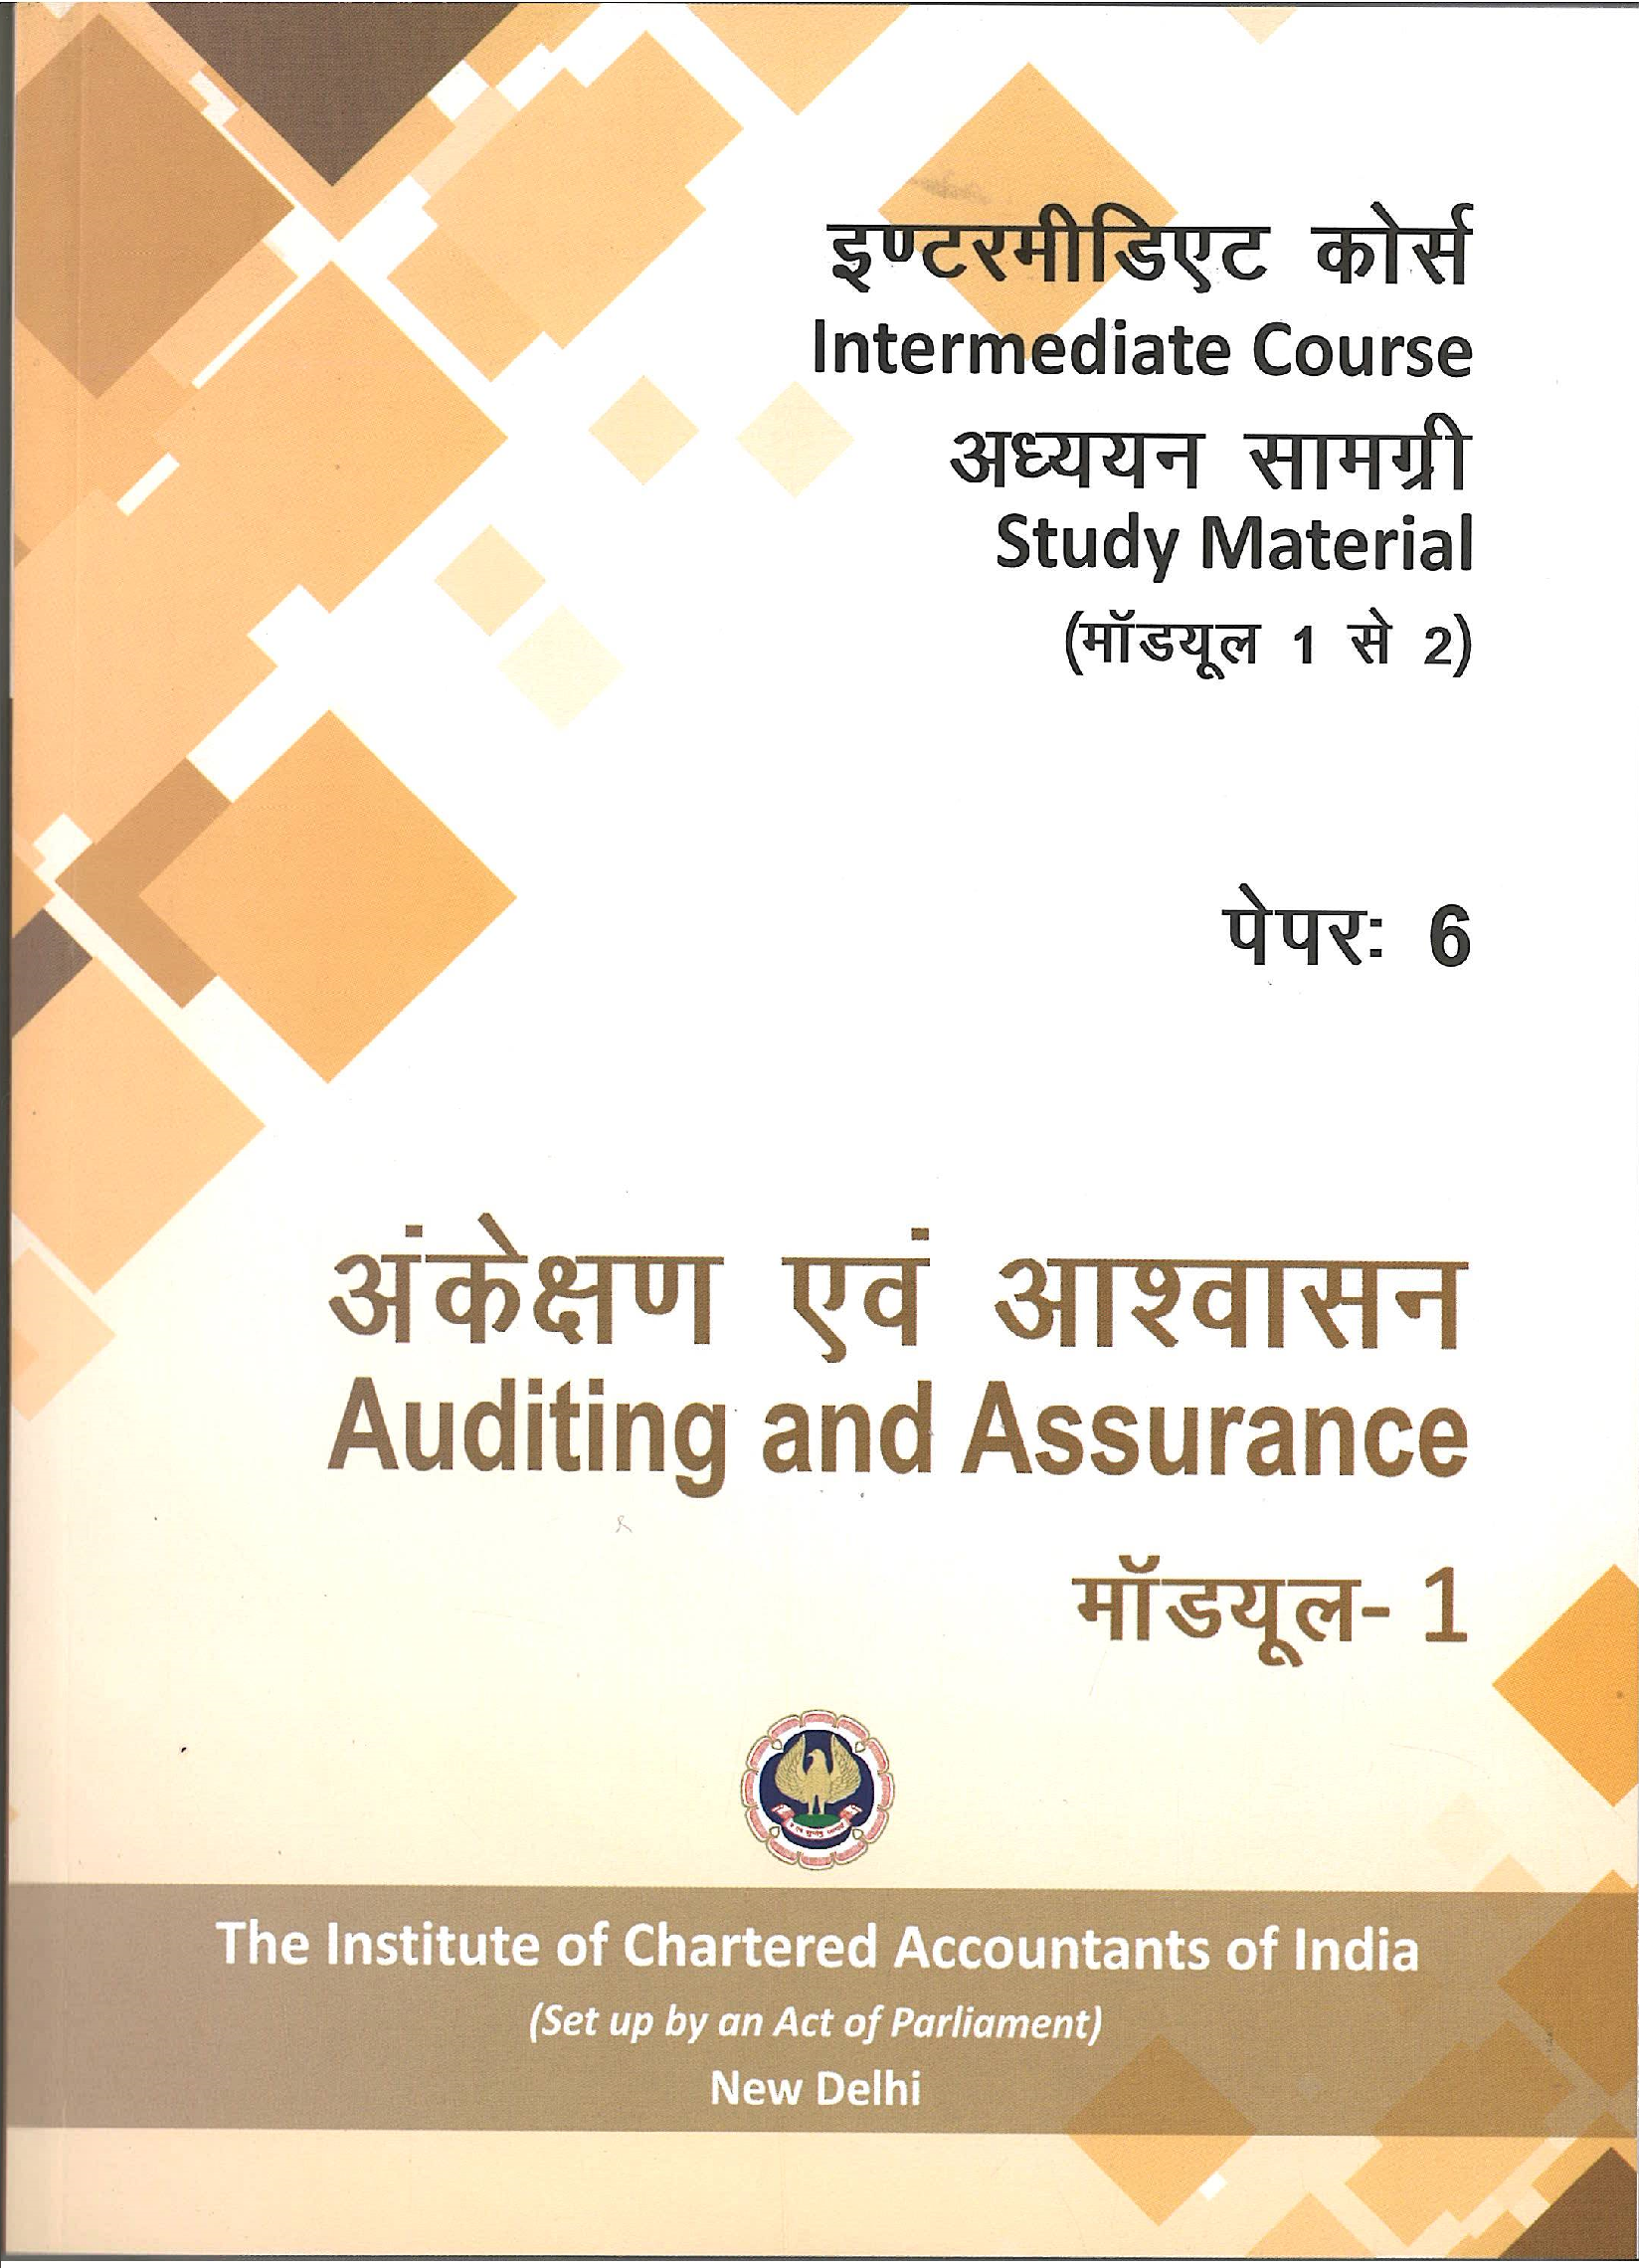 Intermediate Course (Hindi) Study Material Auditing and Assurance (Module 1-2) (July, 2017)